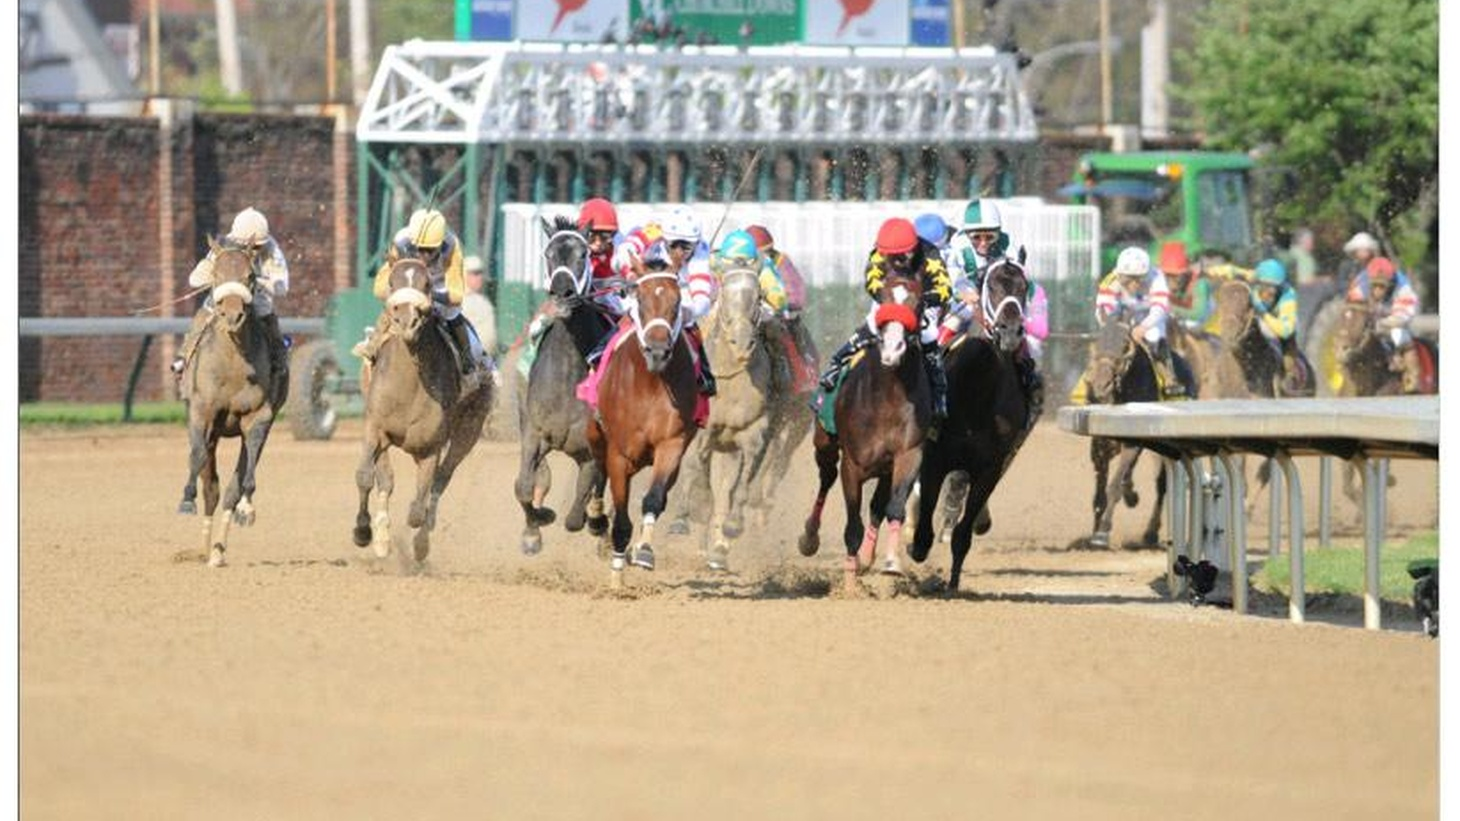 The Kentucky Derby runs this Saturday and it's no surprise that the economy foreshadows a